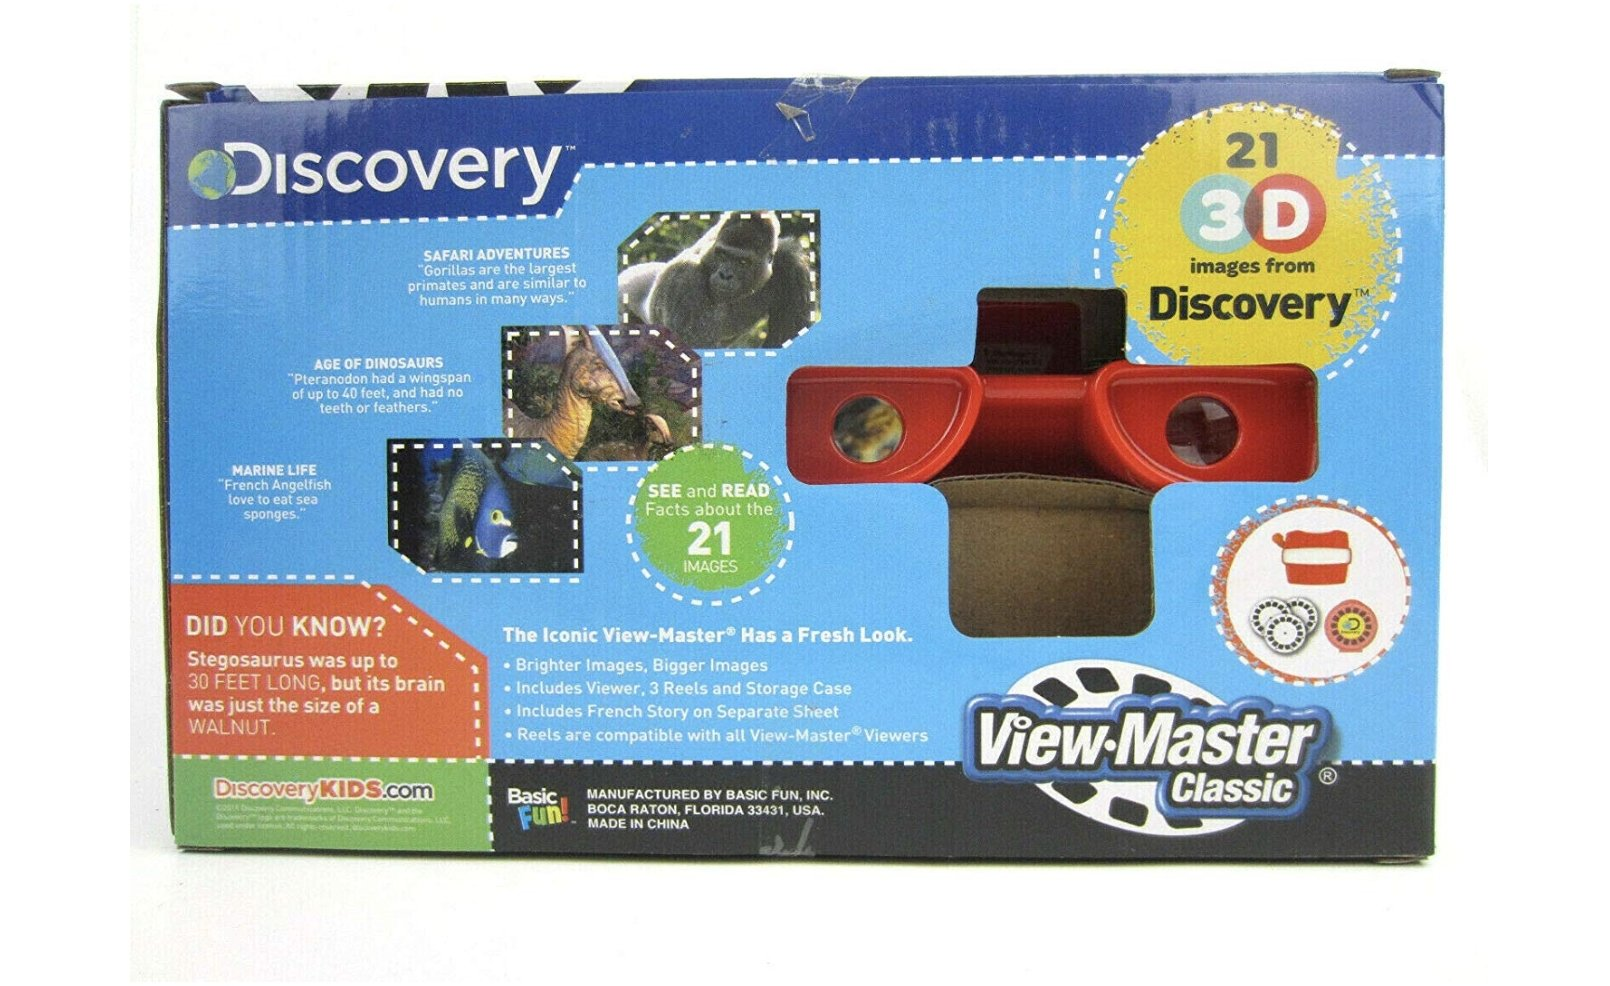 3D View-Master Discovery Kids Box Set